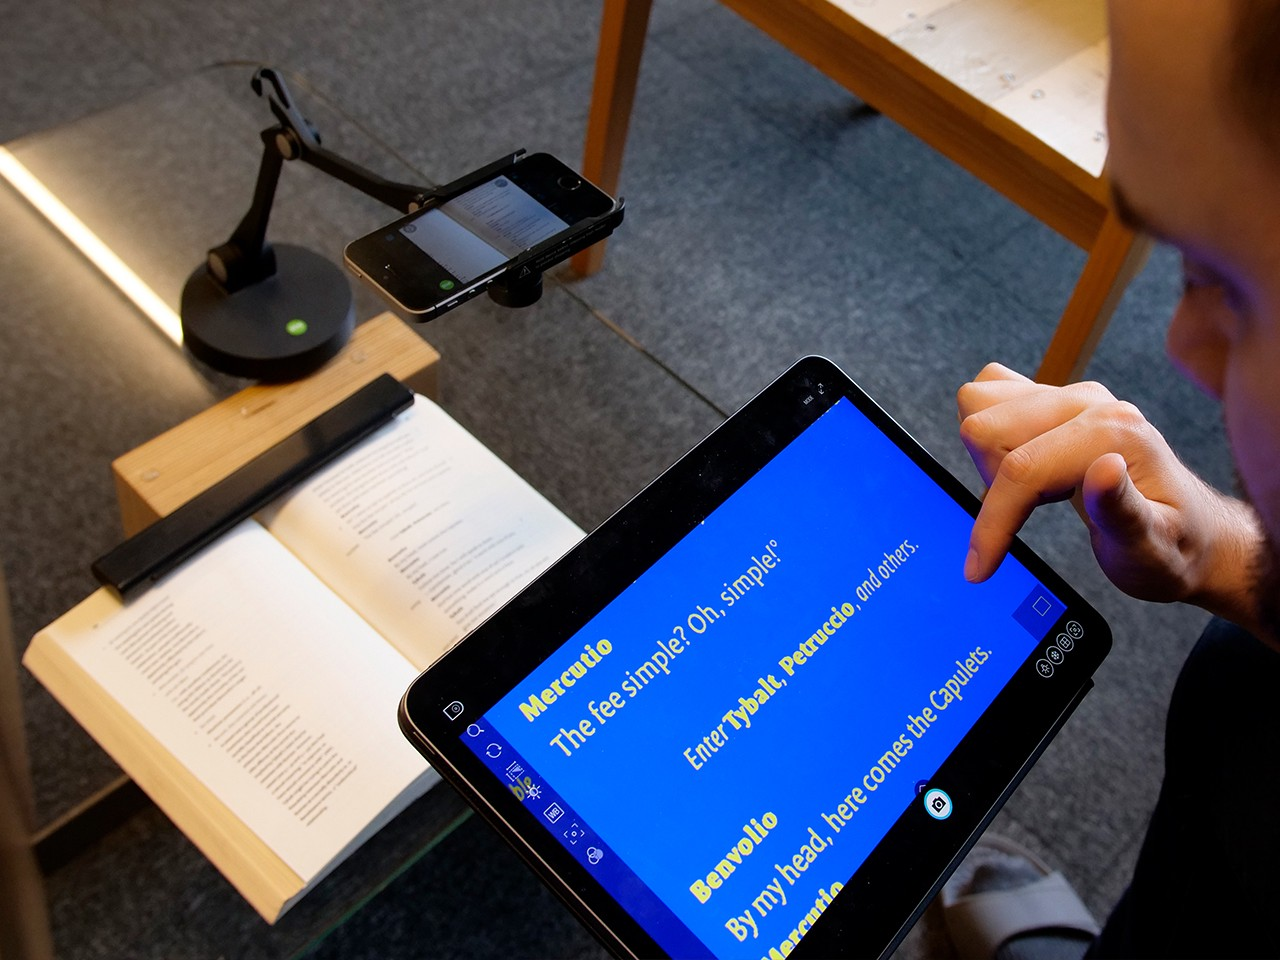 Using iDocCam together with Visualizer software as a portable magnifier for reading.